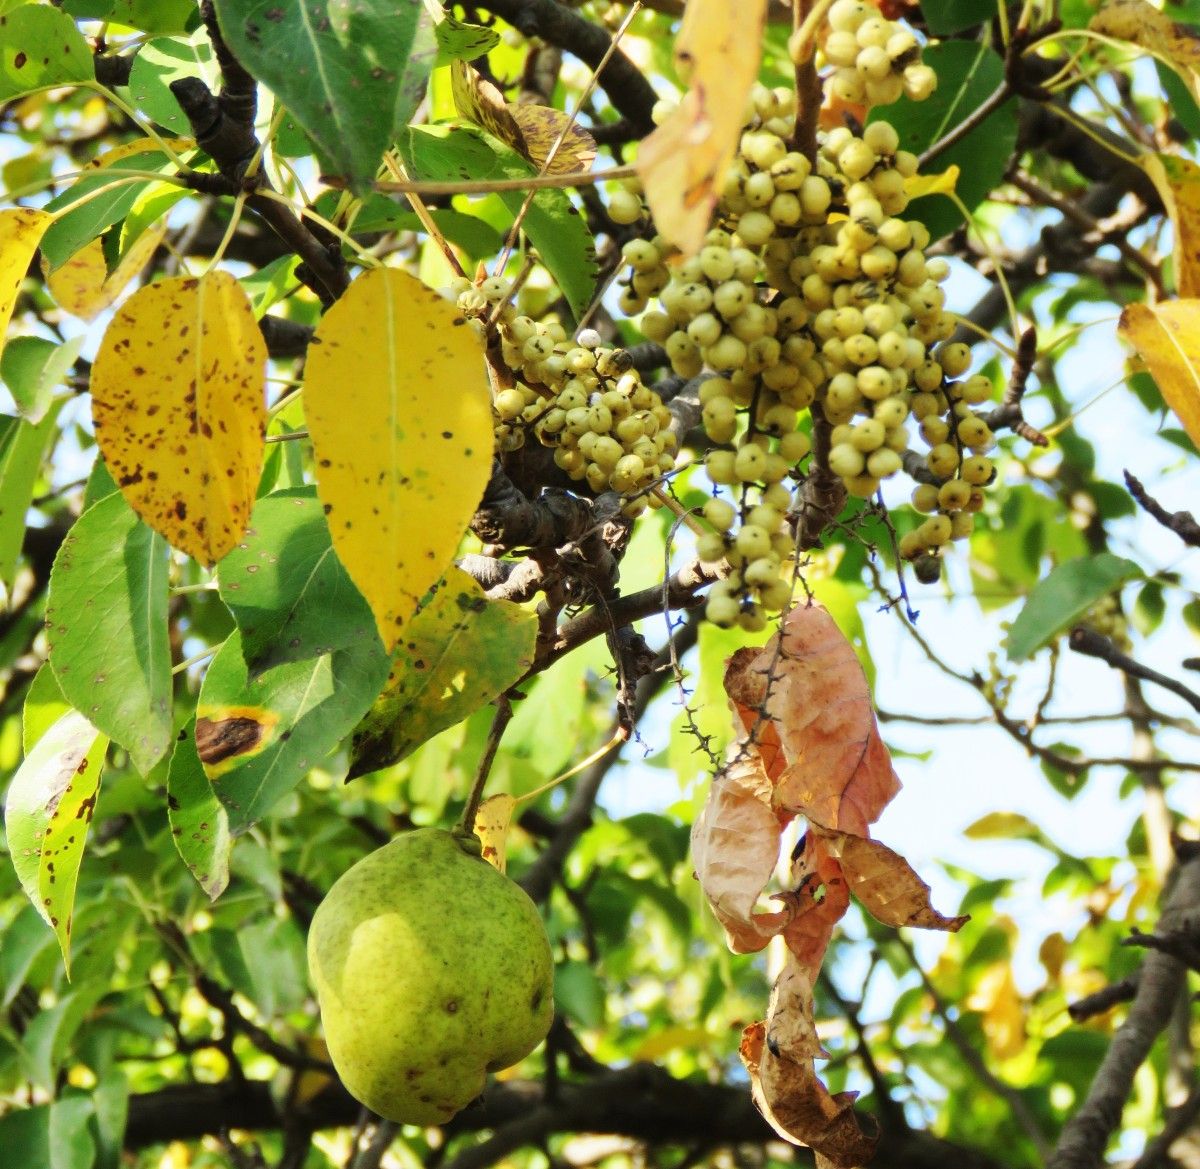 Poison ivy berries hang near a pear tree with fruit.